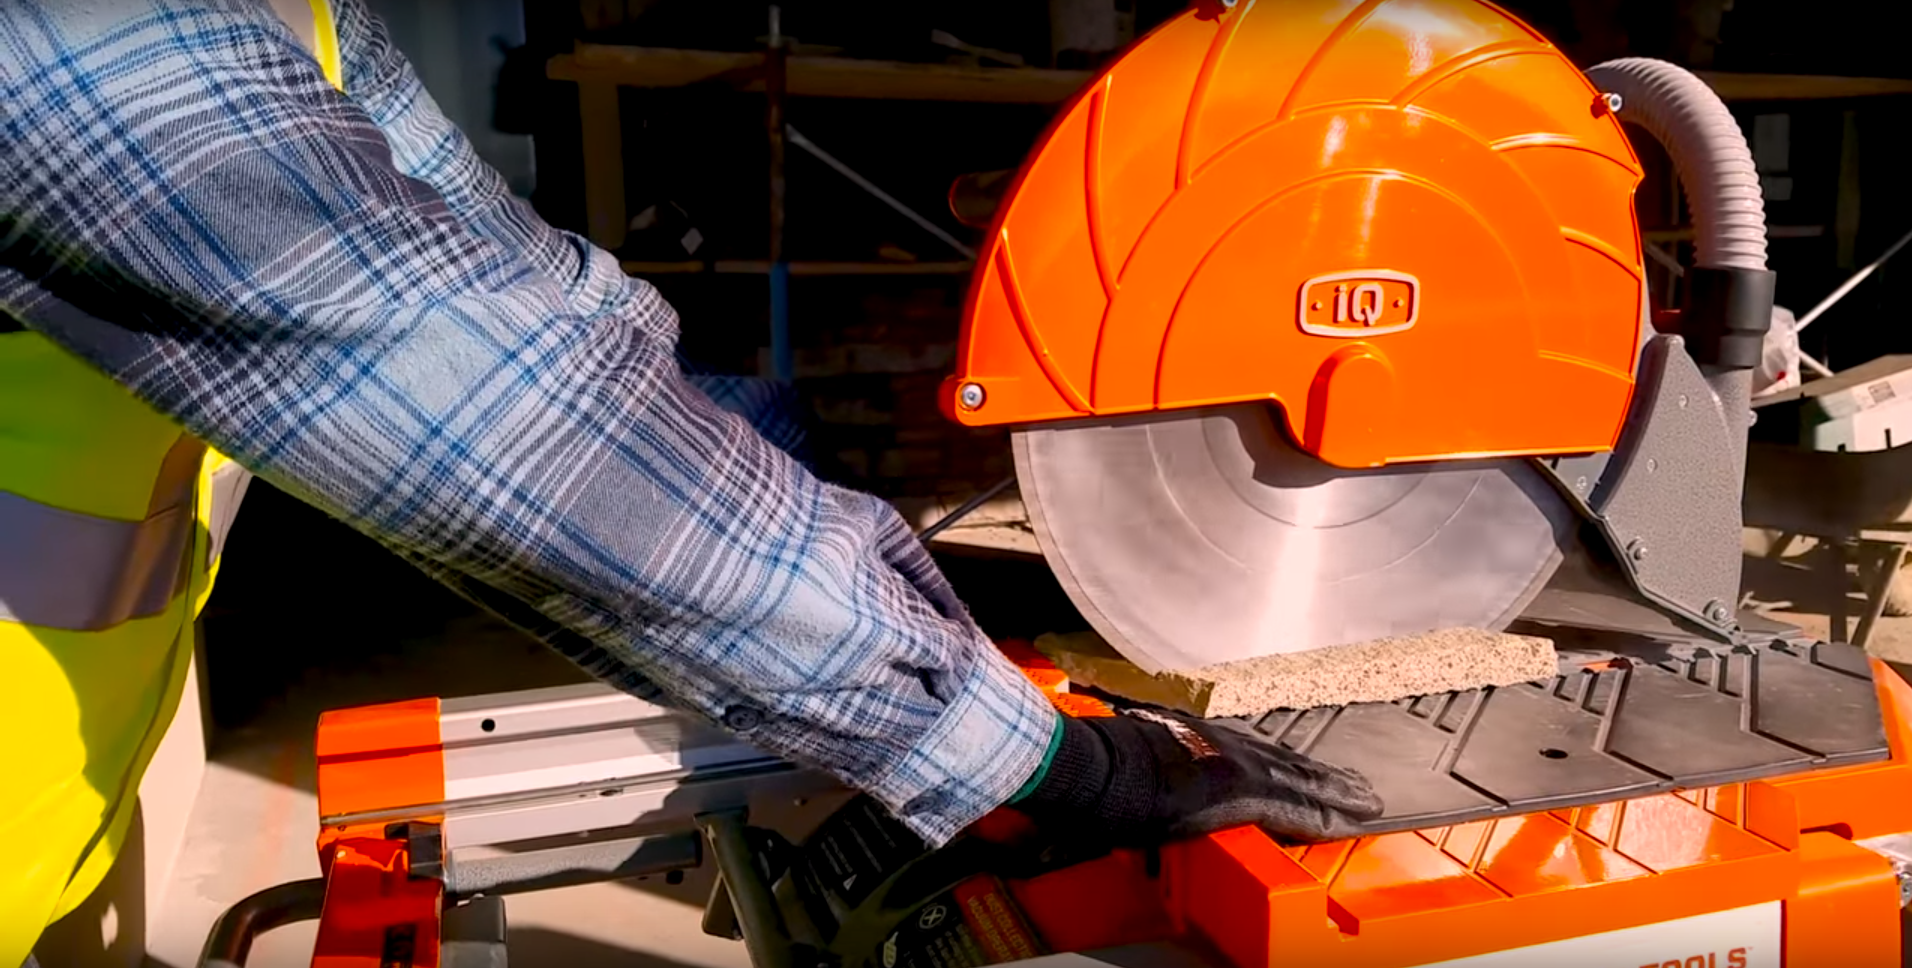 The First-Of-Its-Kind: iQMS362® Dust Control Masonry Saw